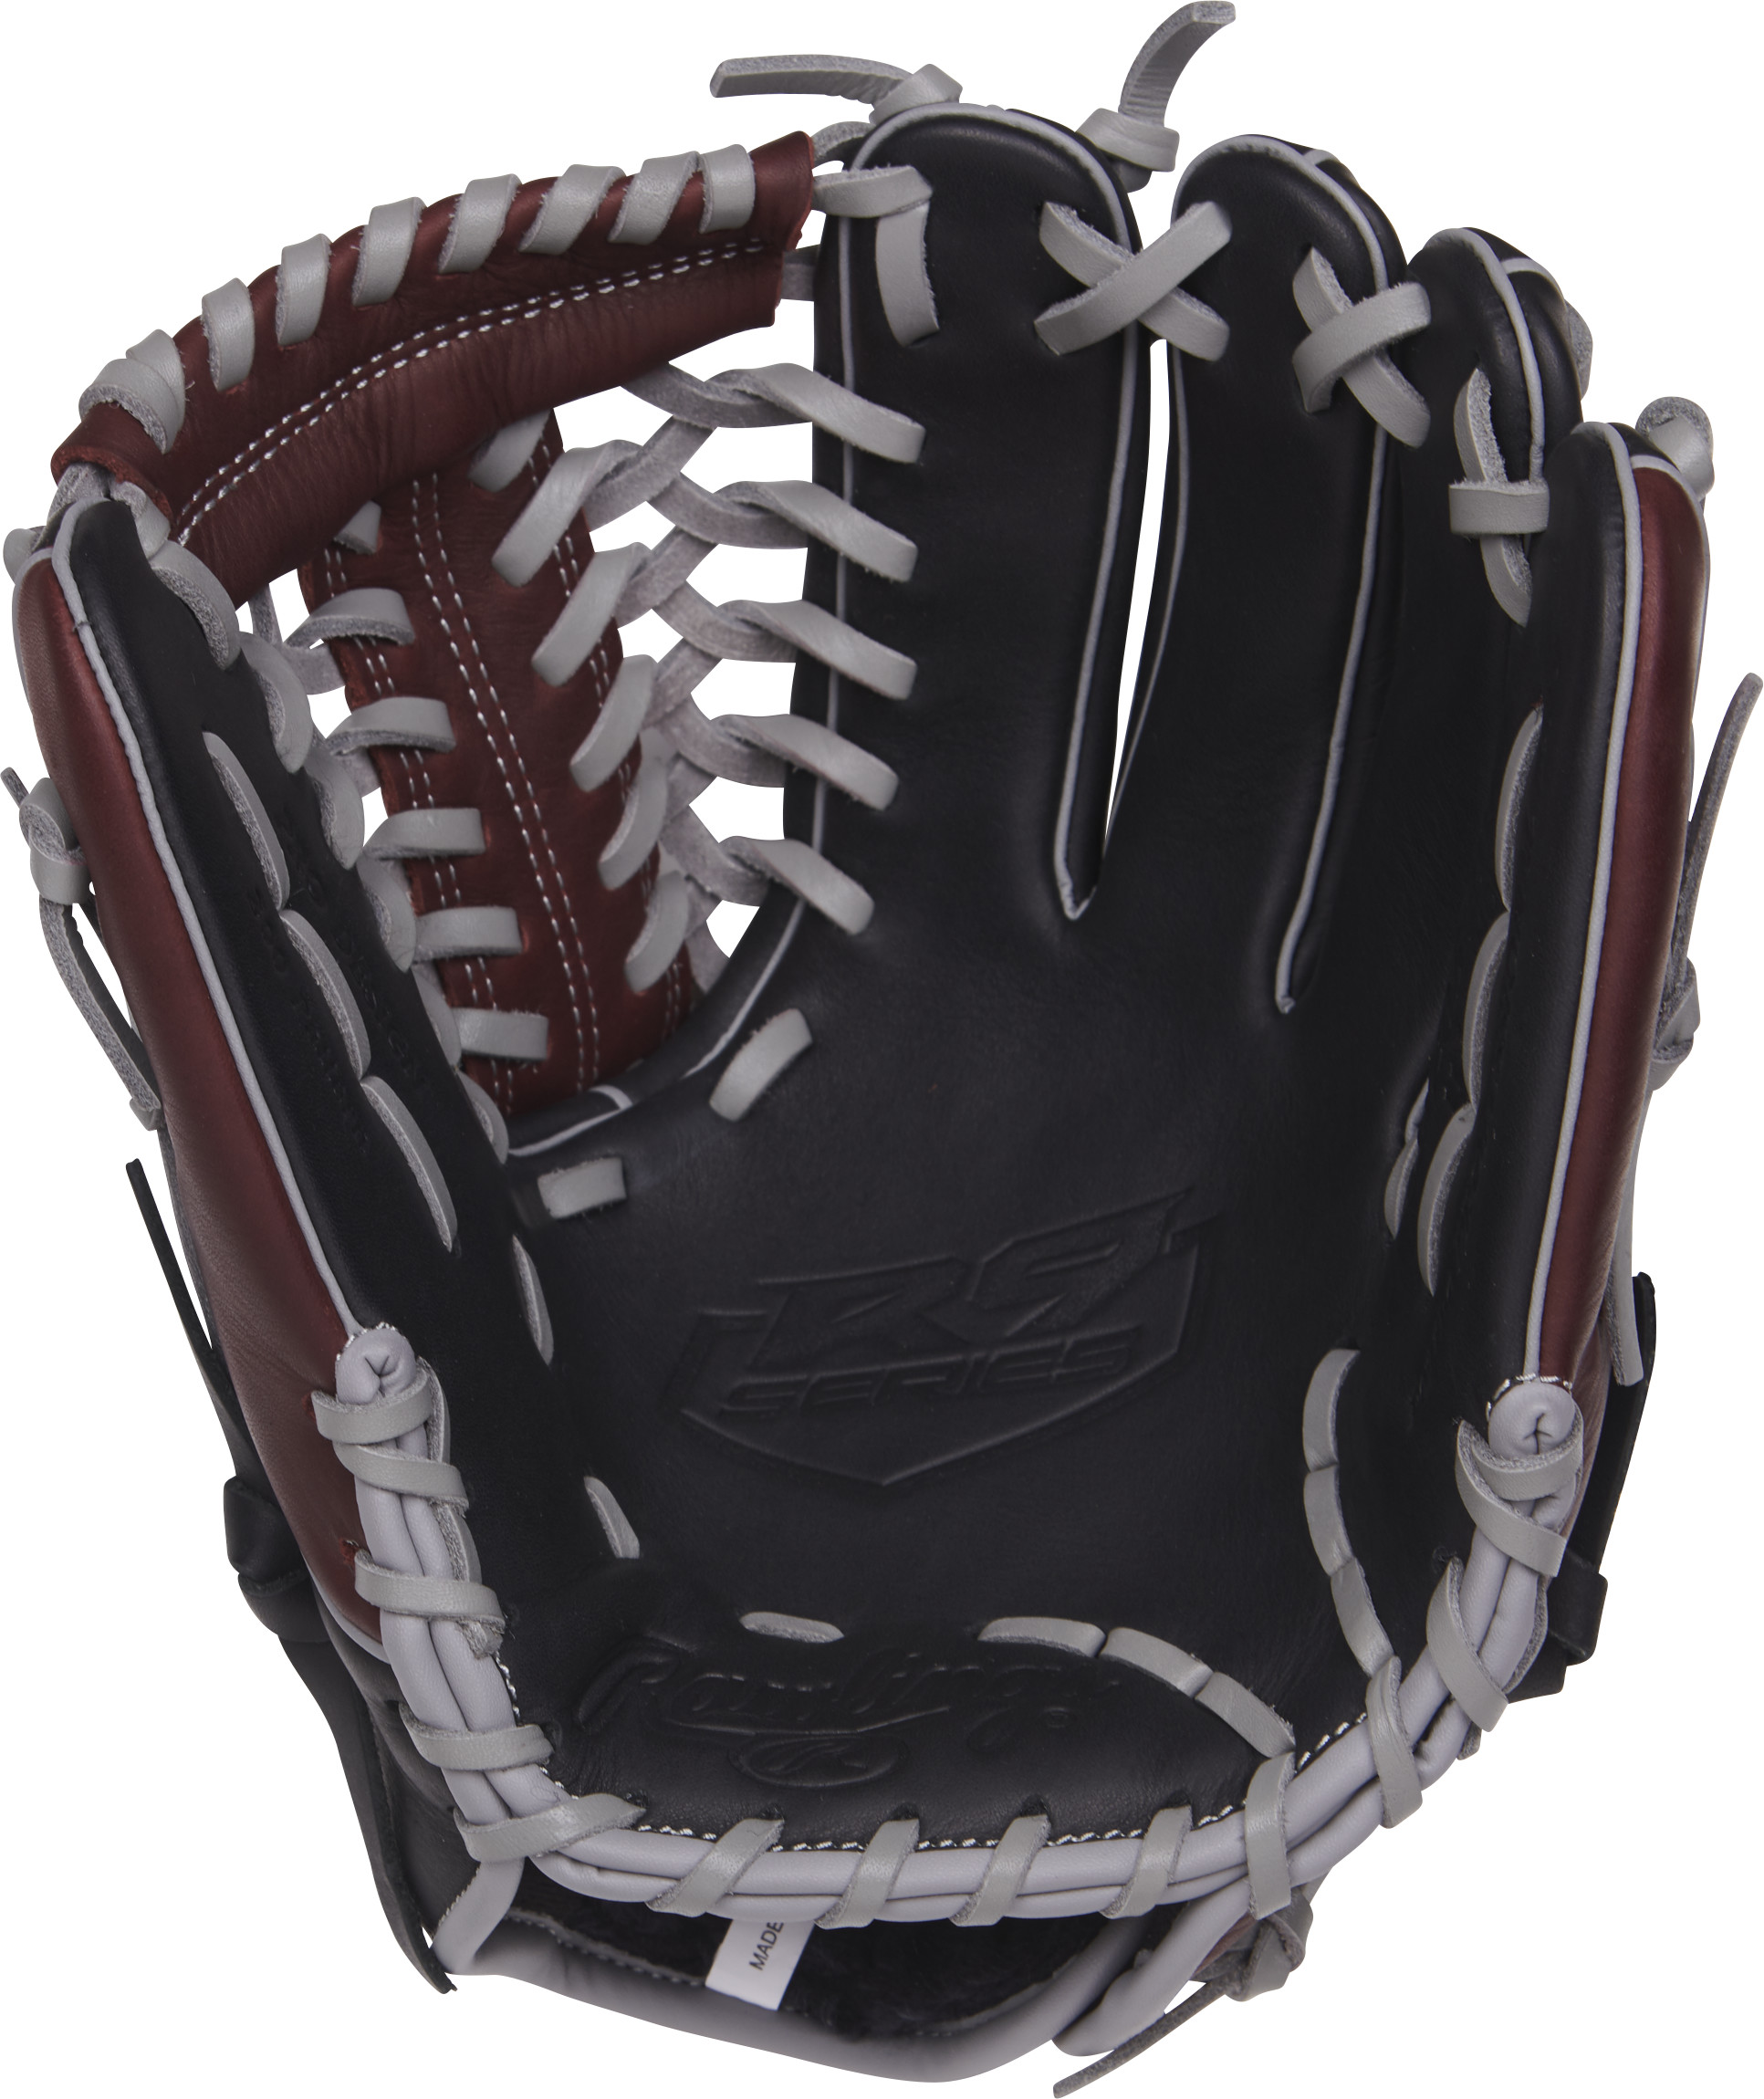 http://www.bestbatdeals.com/images/gloves/rawlings/R9205-4BSG-1.jpg